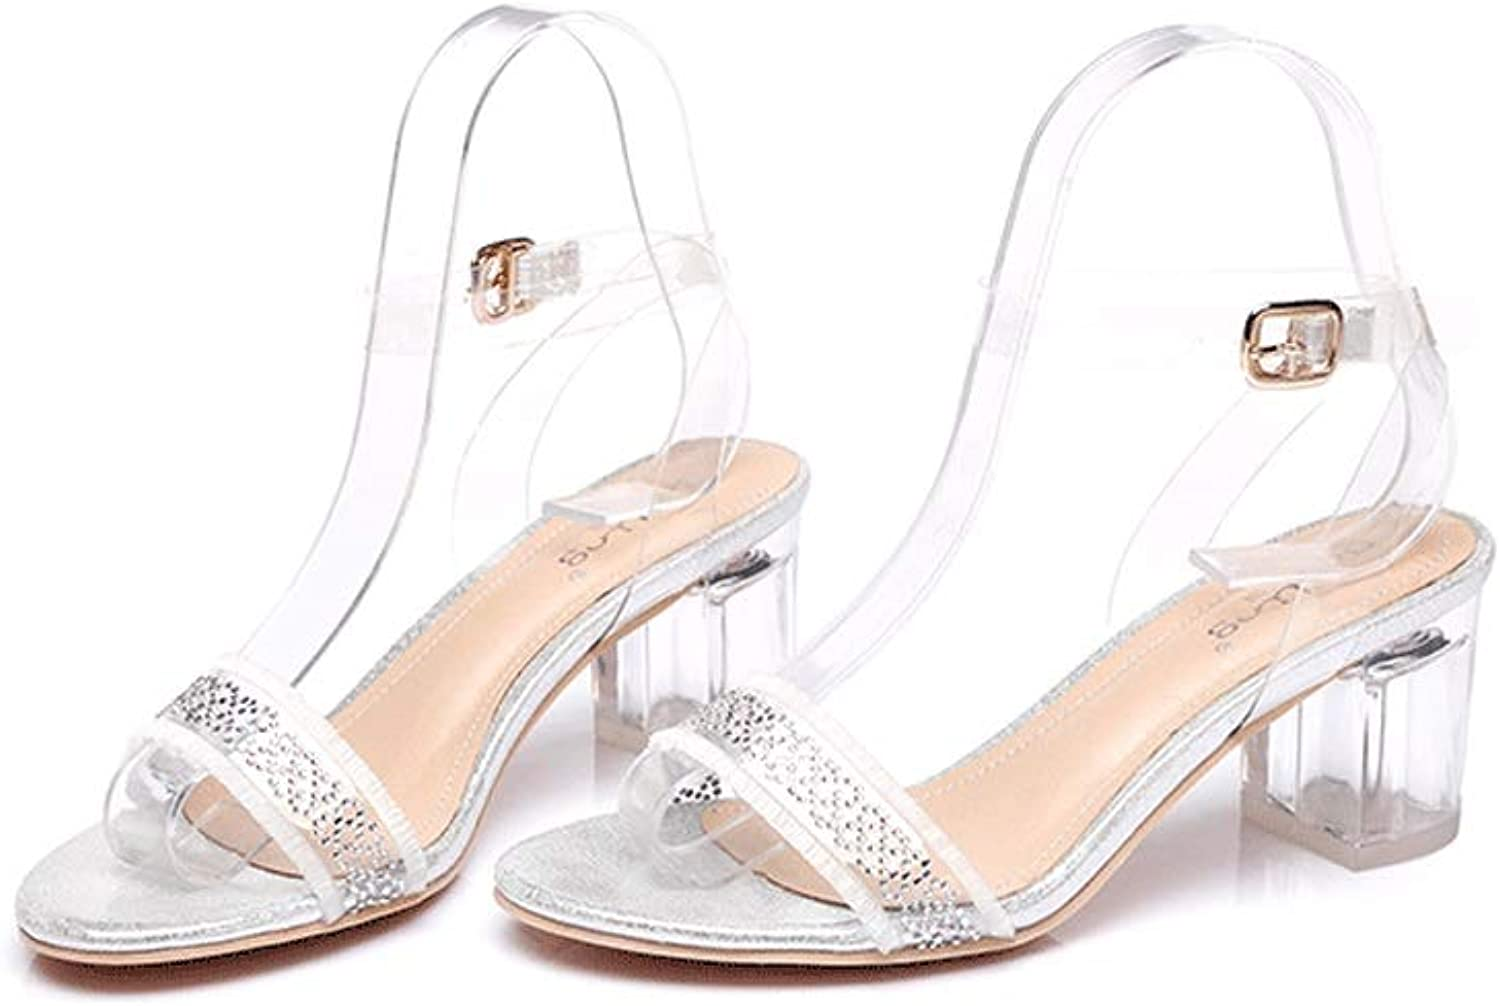 Summer New Women's Sandals with Crystal and Fashion Transparent High-Heeled Rhinestones with Women's shoes Stylish and Comfortable